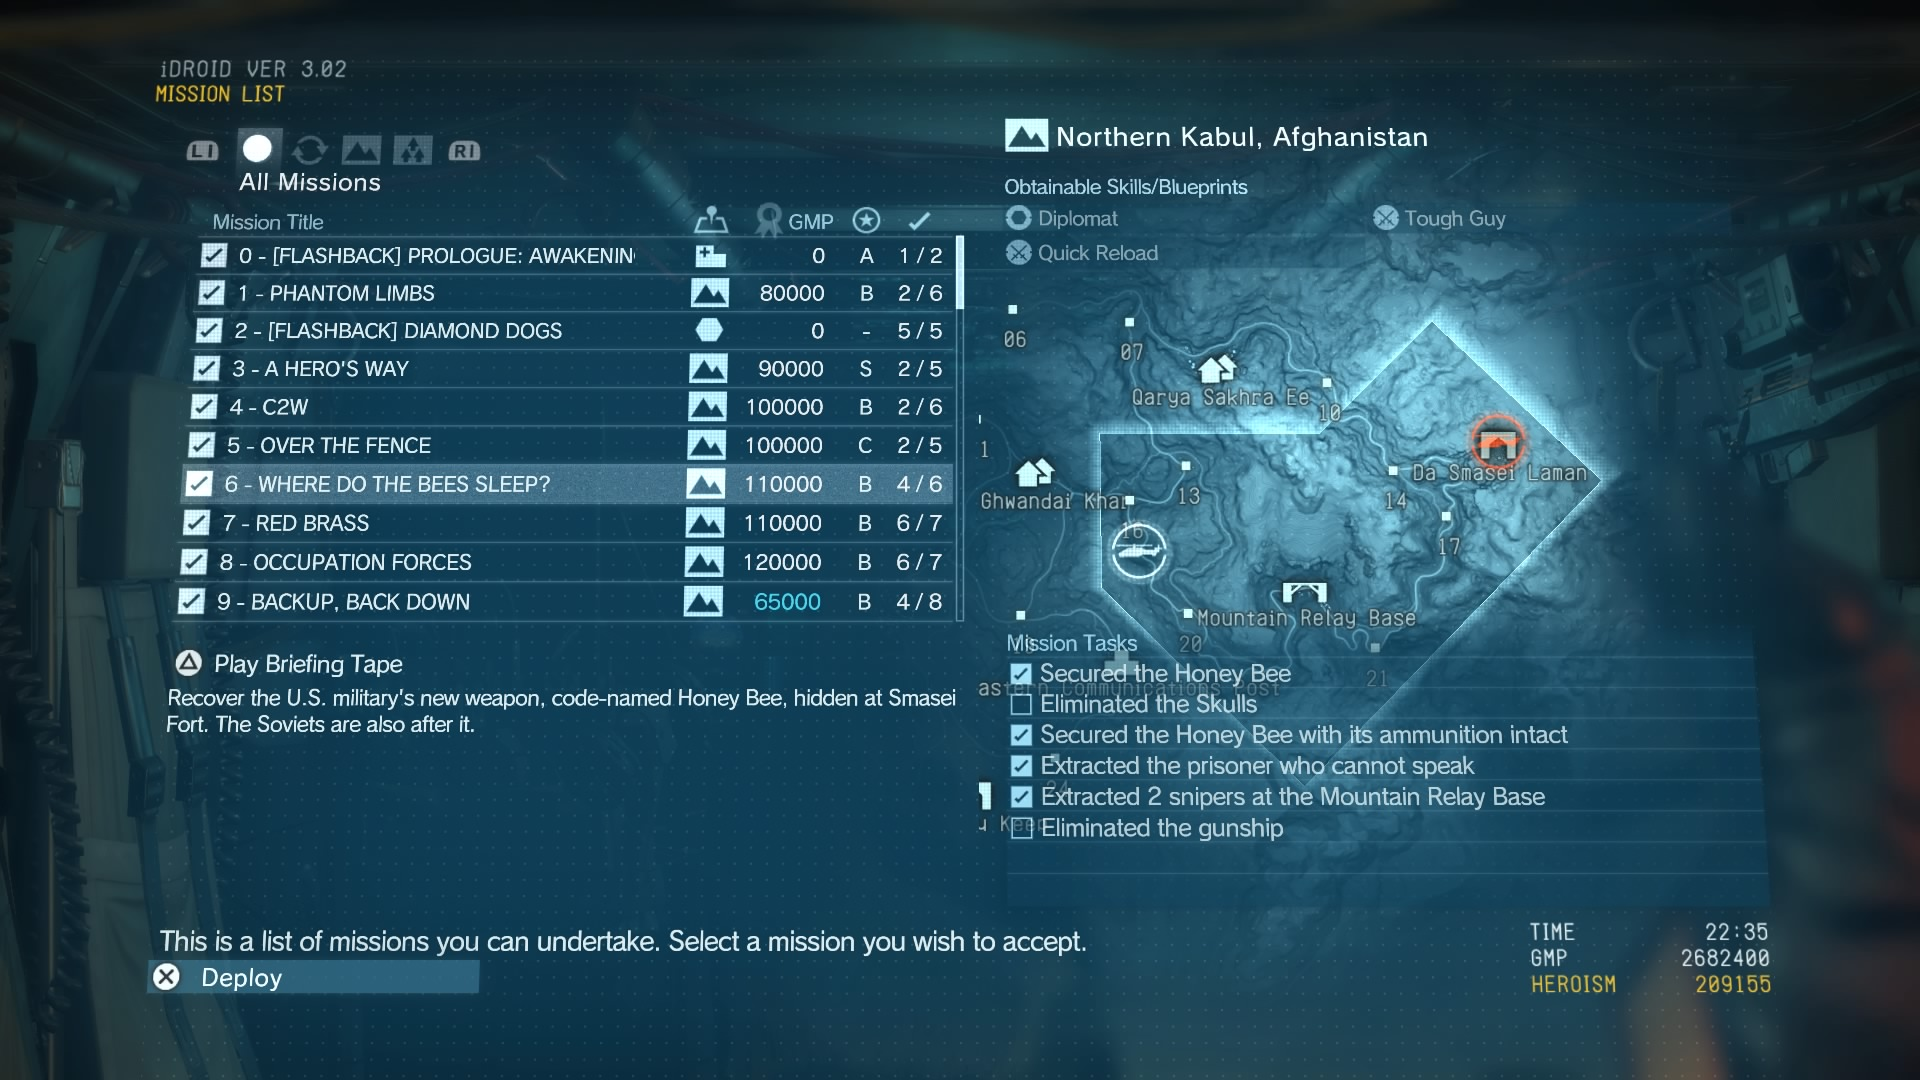 METAL GEAR SOLID V: THE PHANTOM PAIN_Missions